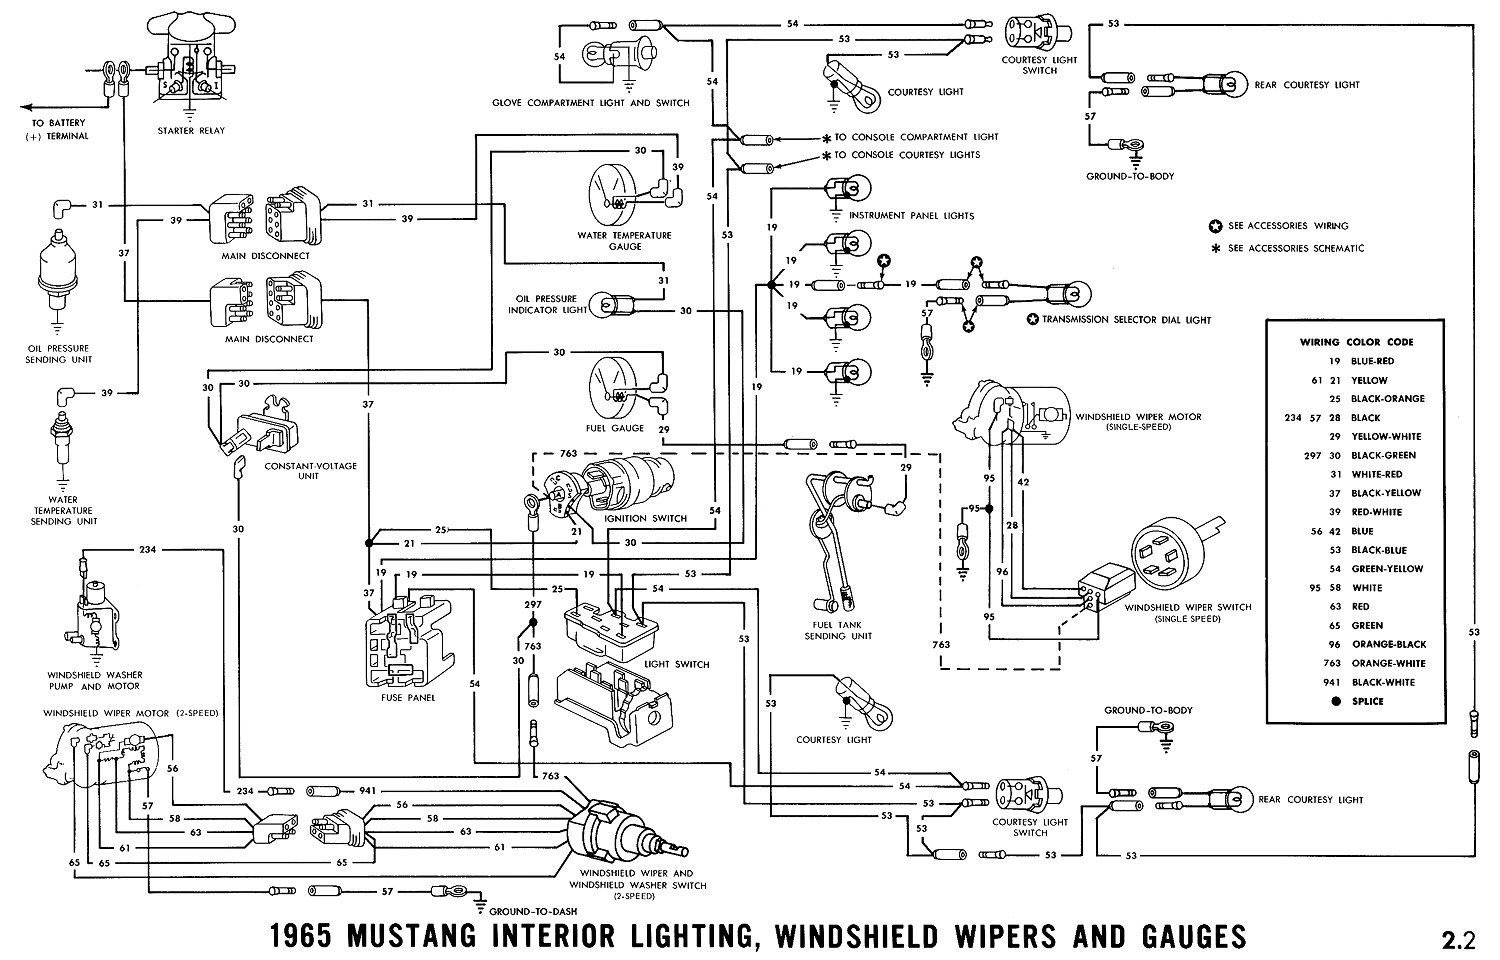 1965g 1965 mustang wiring diagrams average joe restoration 1965 ford mustang wiring diagrams at panicattacktreatment.co